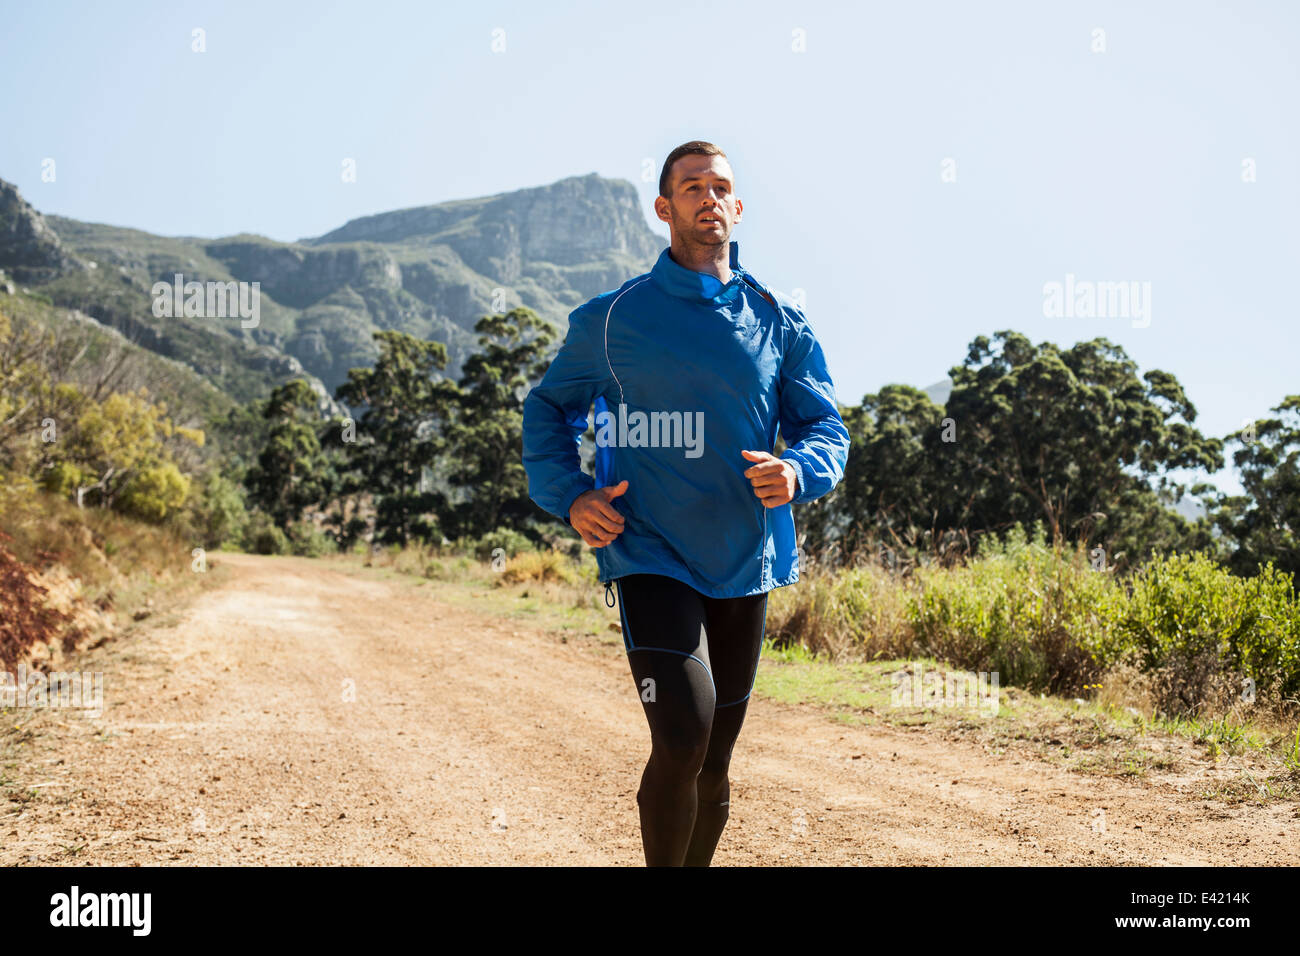 Young man jogging in forest - Stock Image